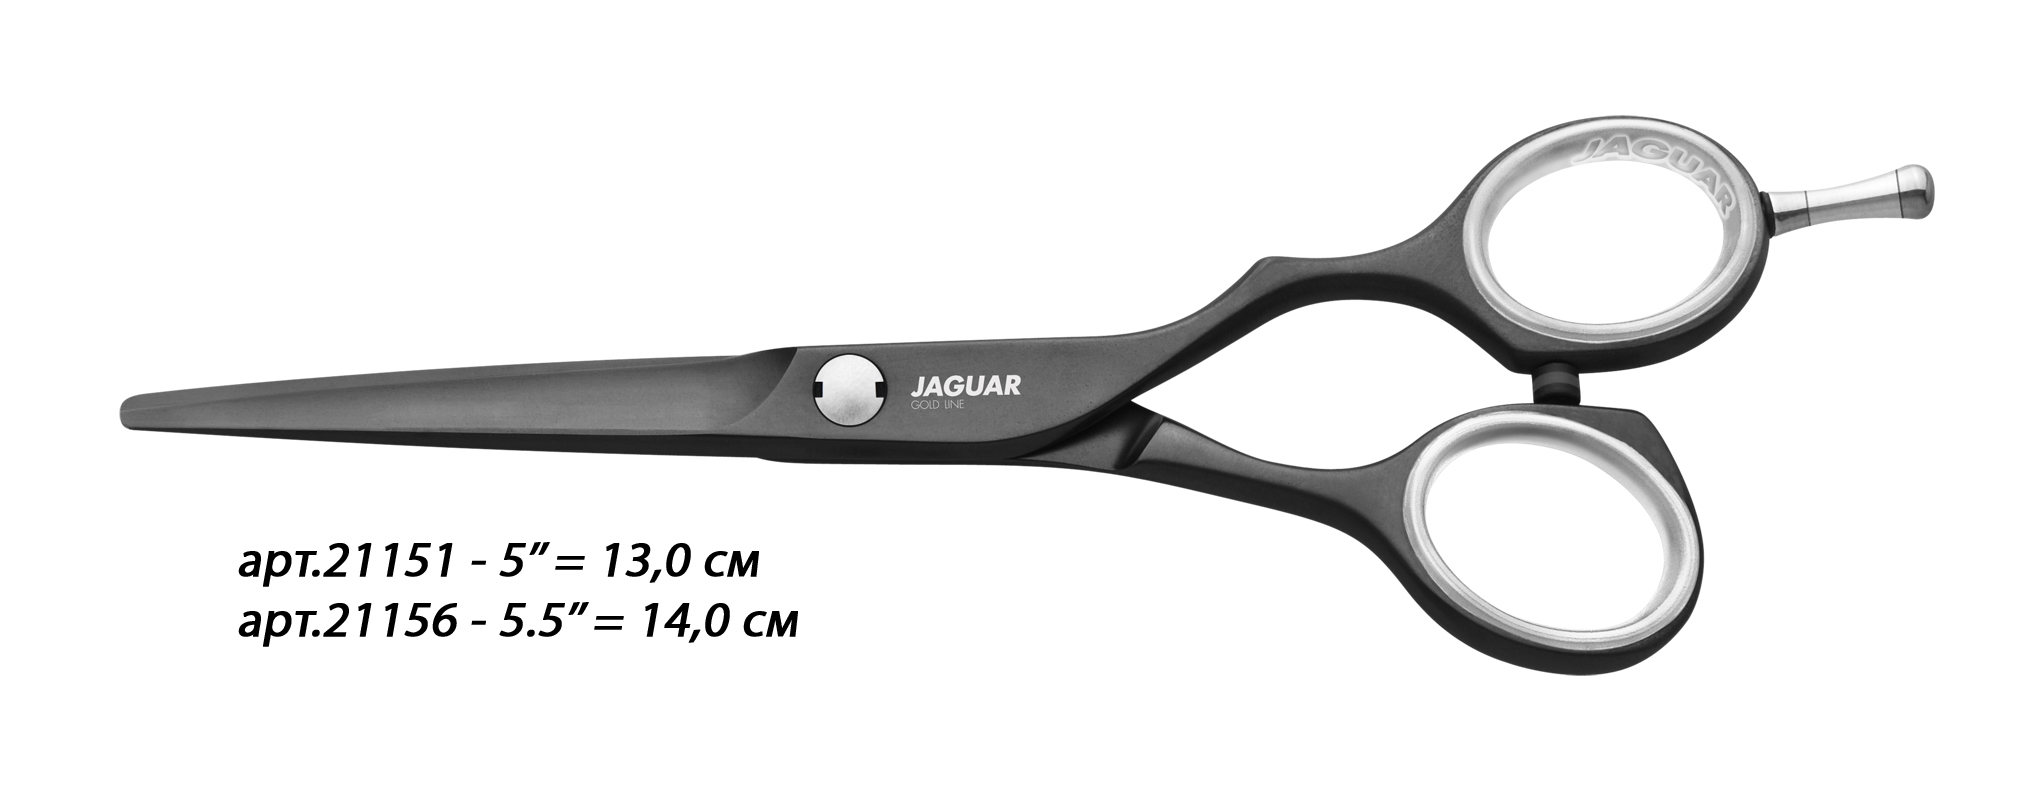 JAGUAR Ножницы Jaguar Diamond E Ceramic Fusion 5,5'(14cm)GL ножницы 21150 2 diamond e design 5